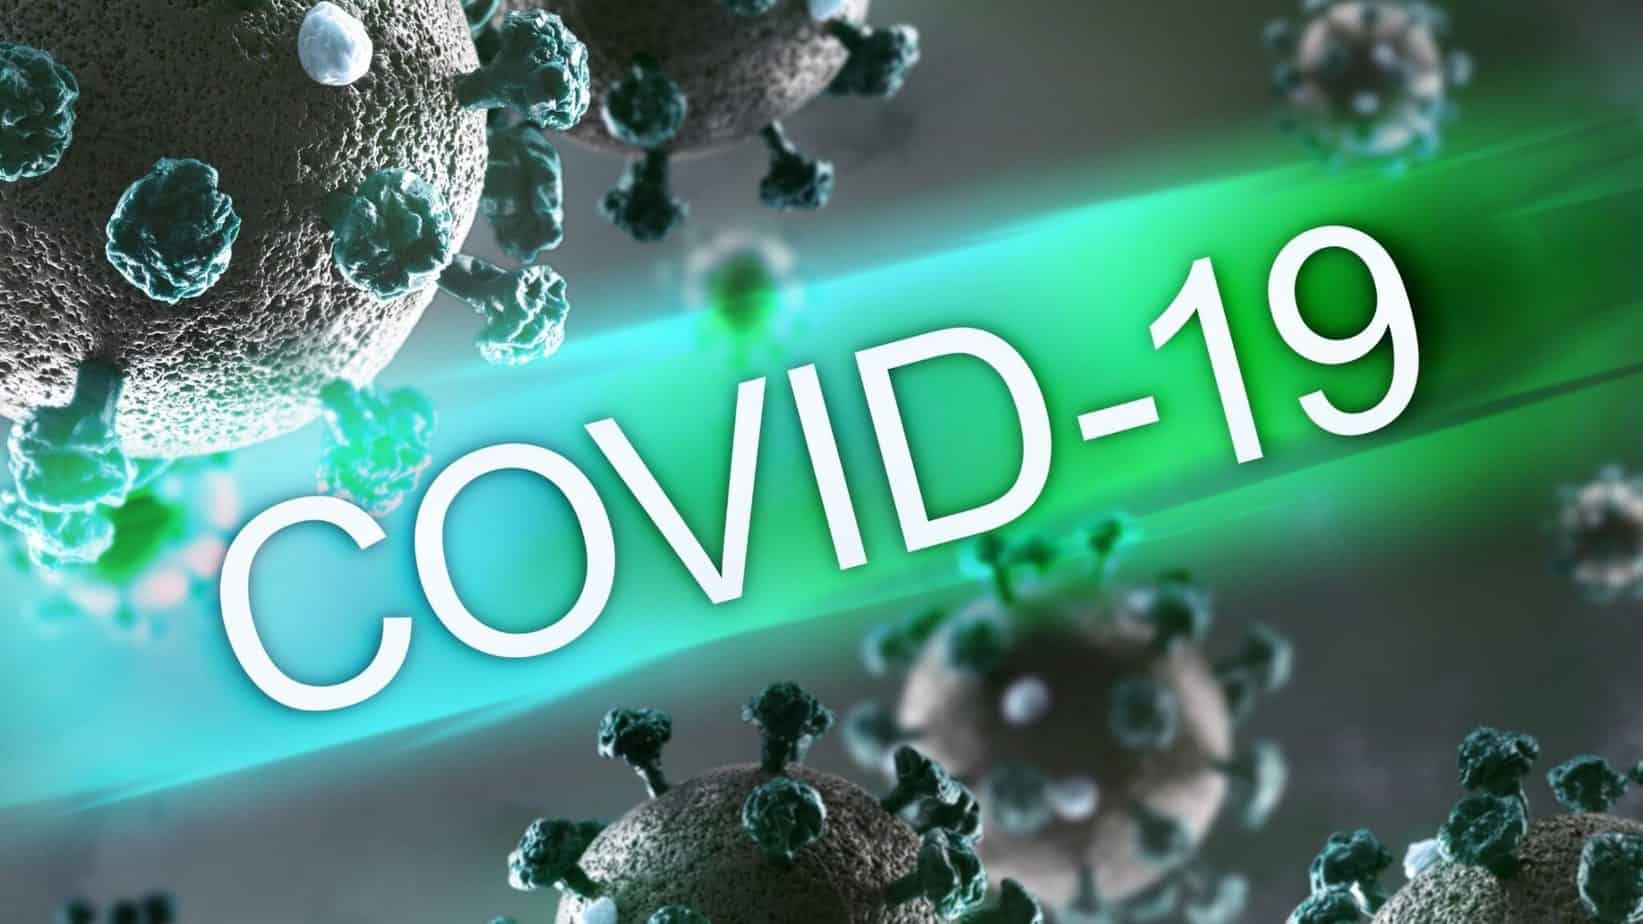 COVOID 19